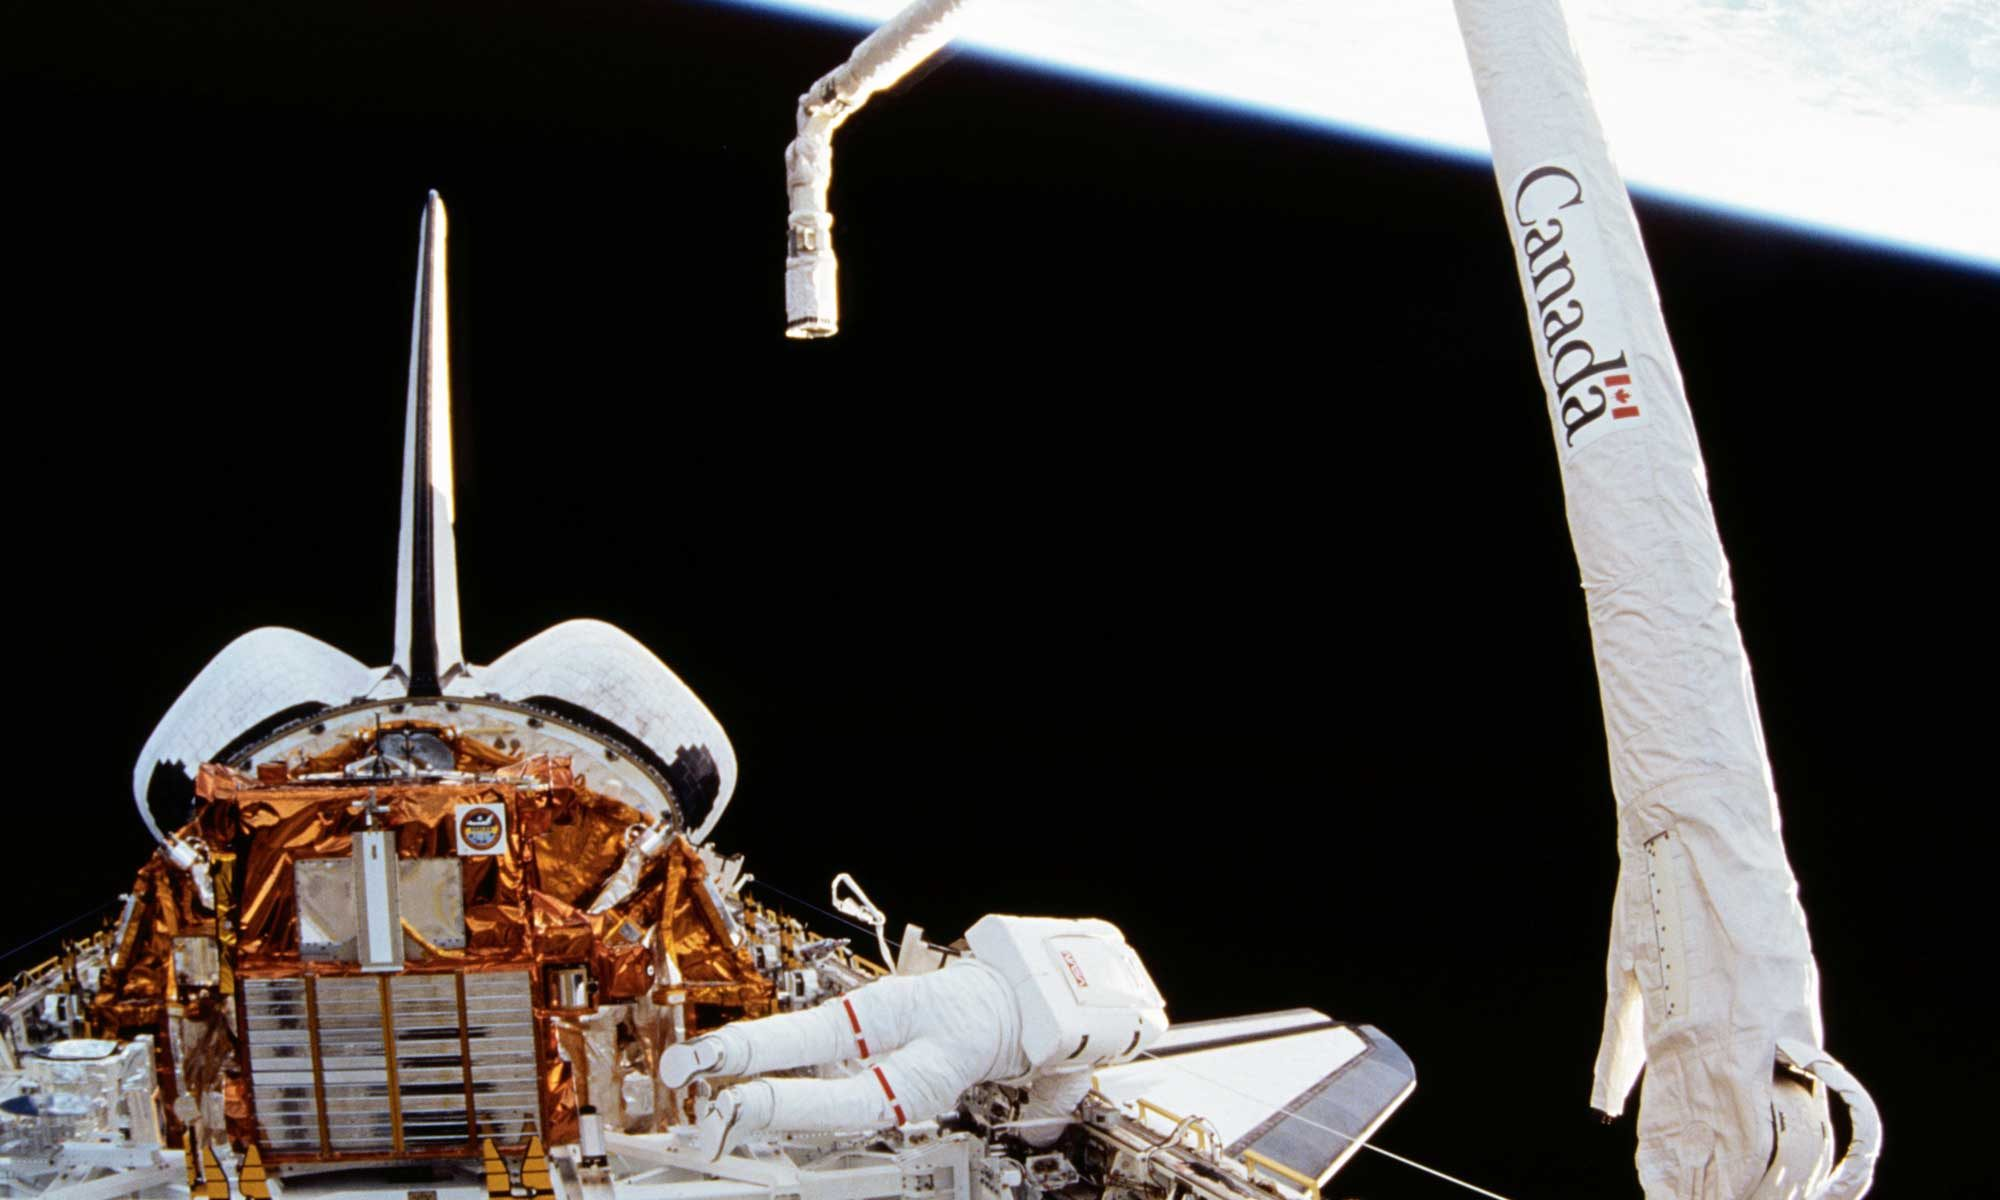 Canadarm - Canada Space Arm. Photo credit NASA - https://archive.org/details/STS072-722-041, Public Domain, https://commons.wikimedia.org/w/index.php?curid=29803999